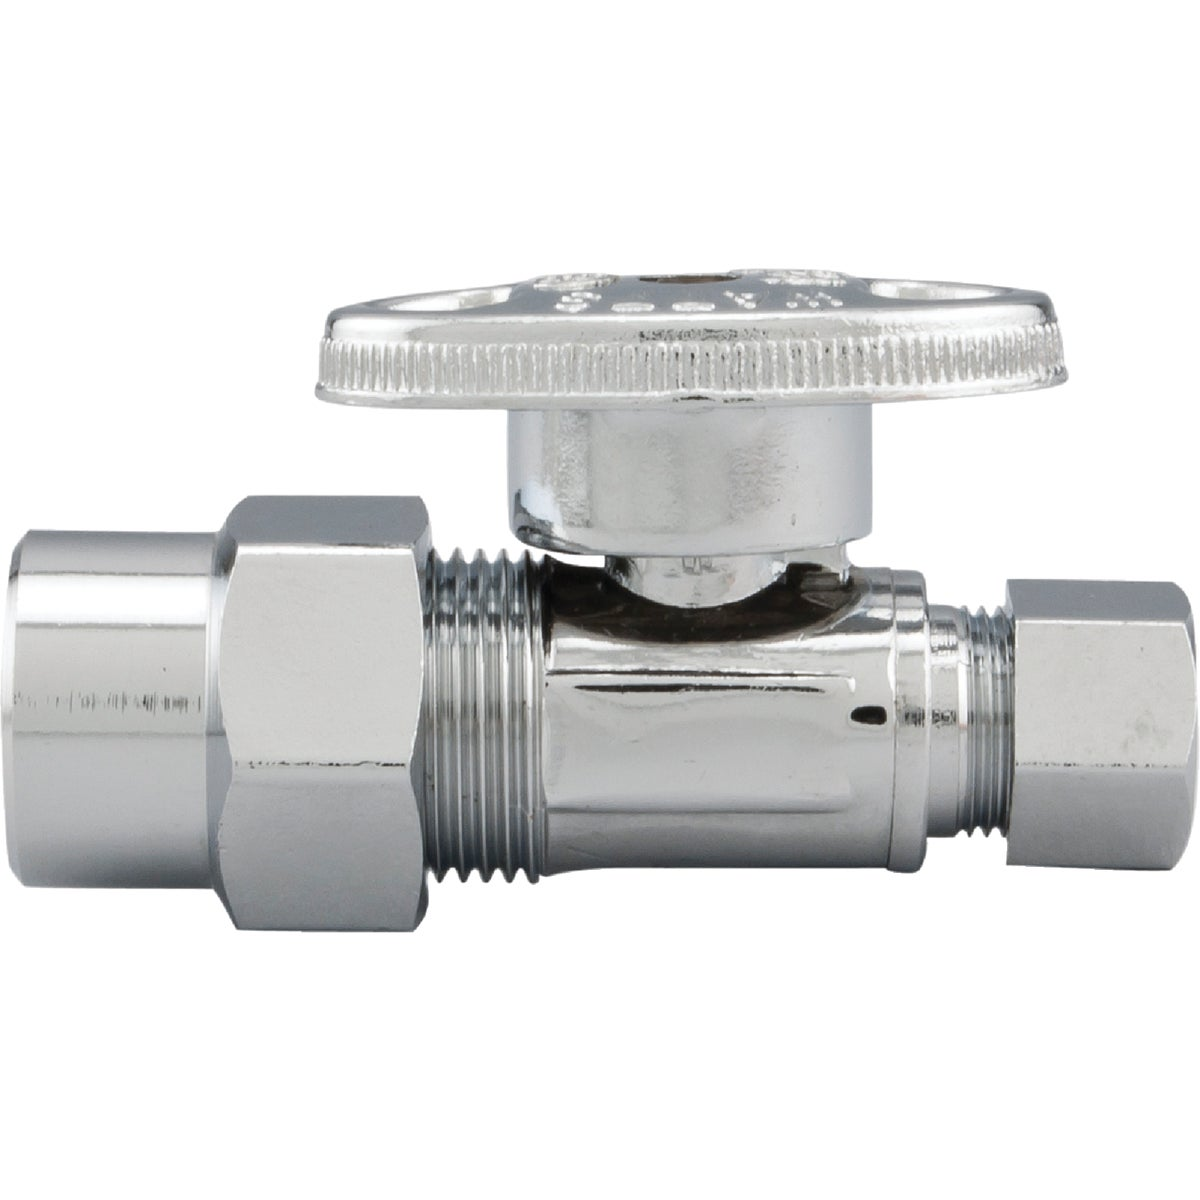 1/2CPVCX3/8C STRT VALVE - LFPBQTC-670 by Watts Regulator Co